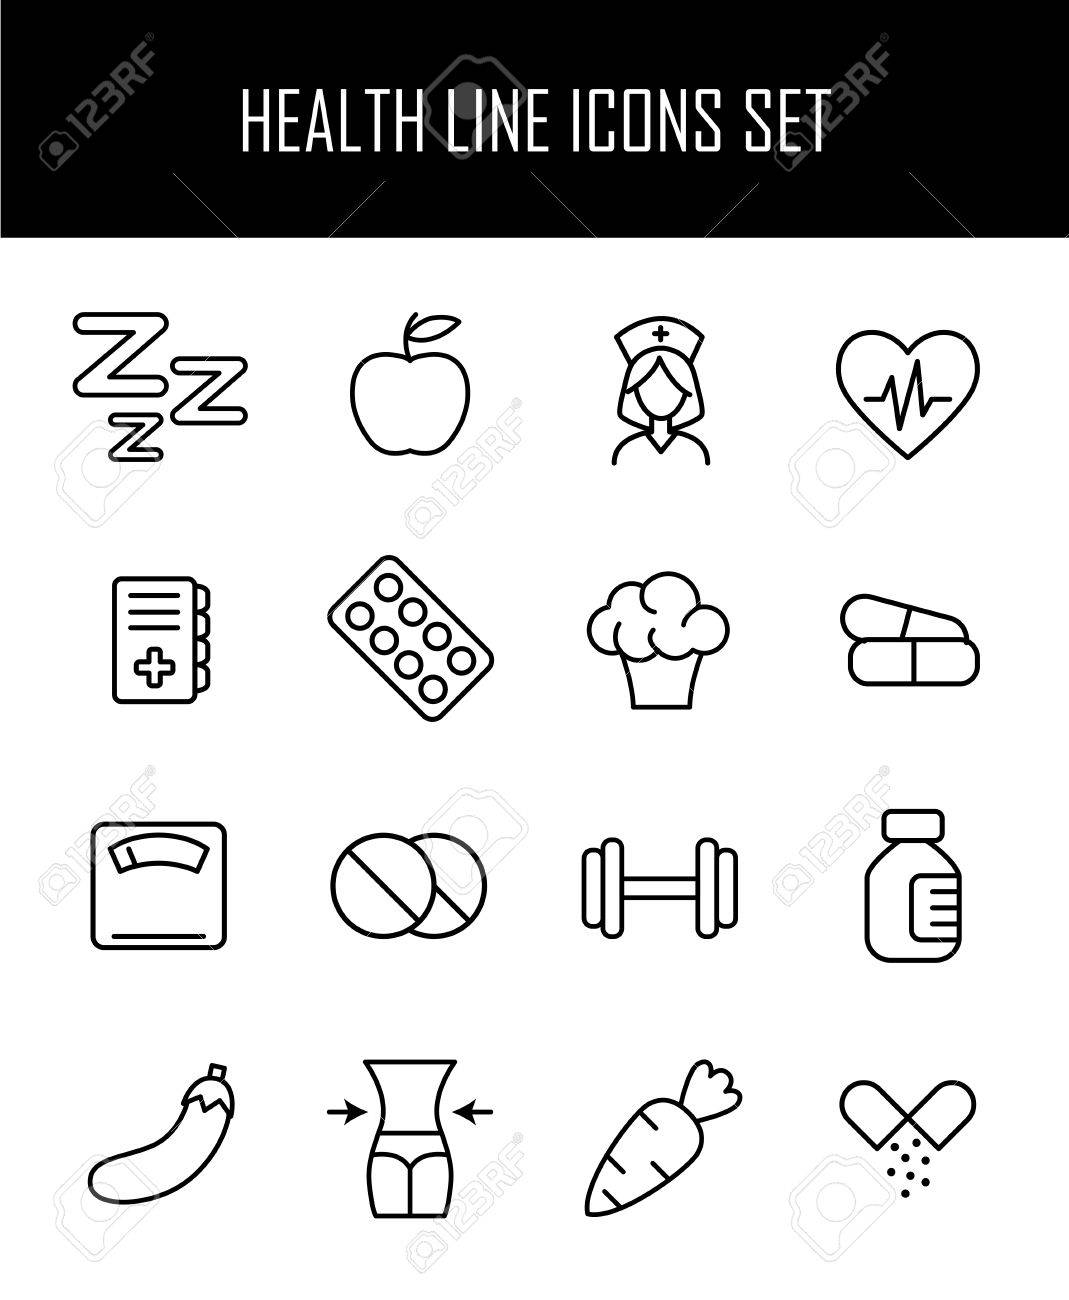 Set Of Health Icons In Modern Thin Line Style High Quality Black